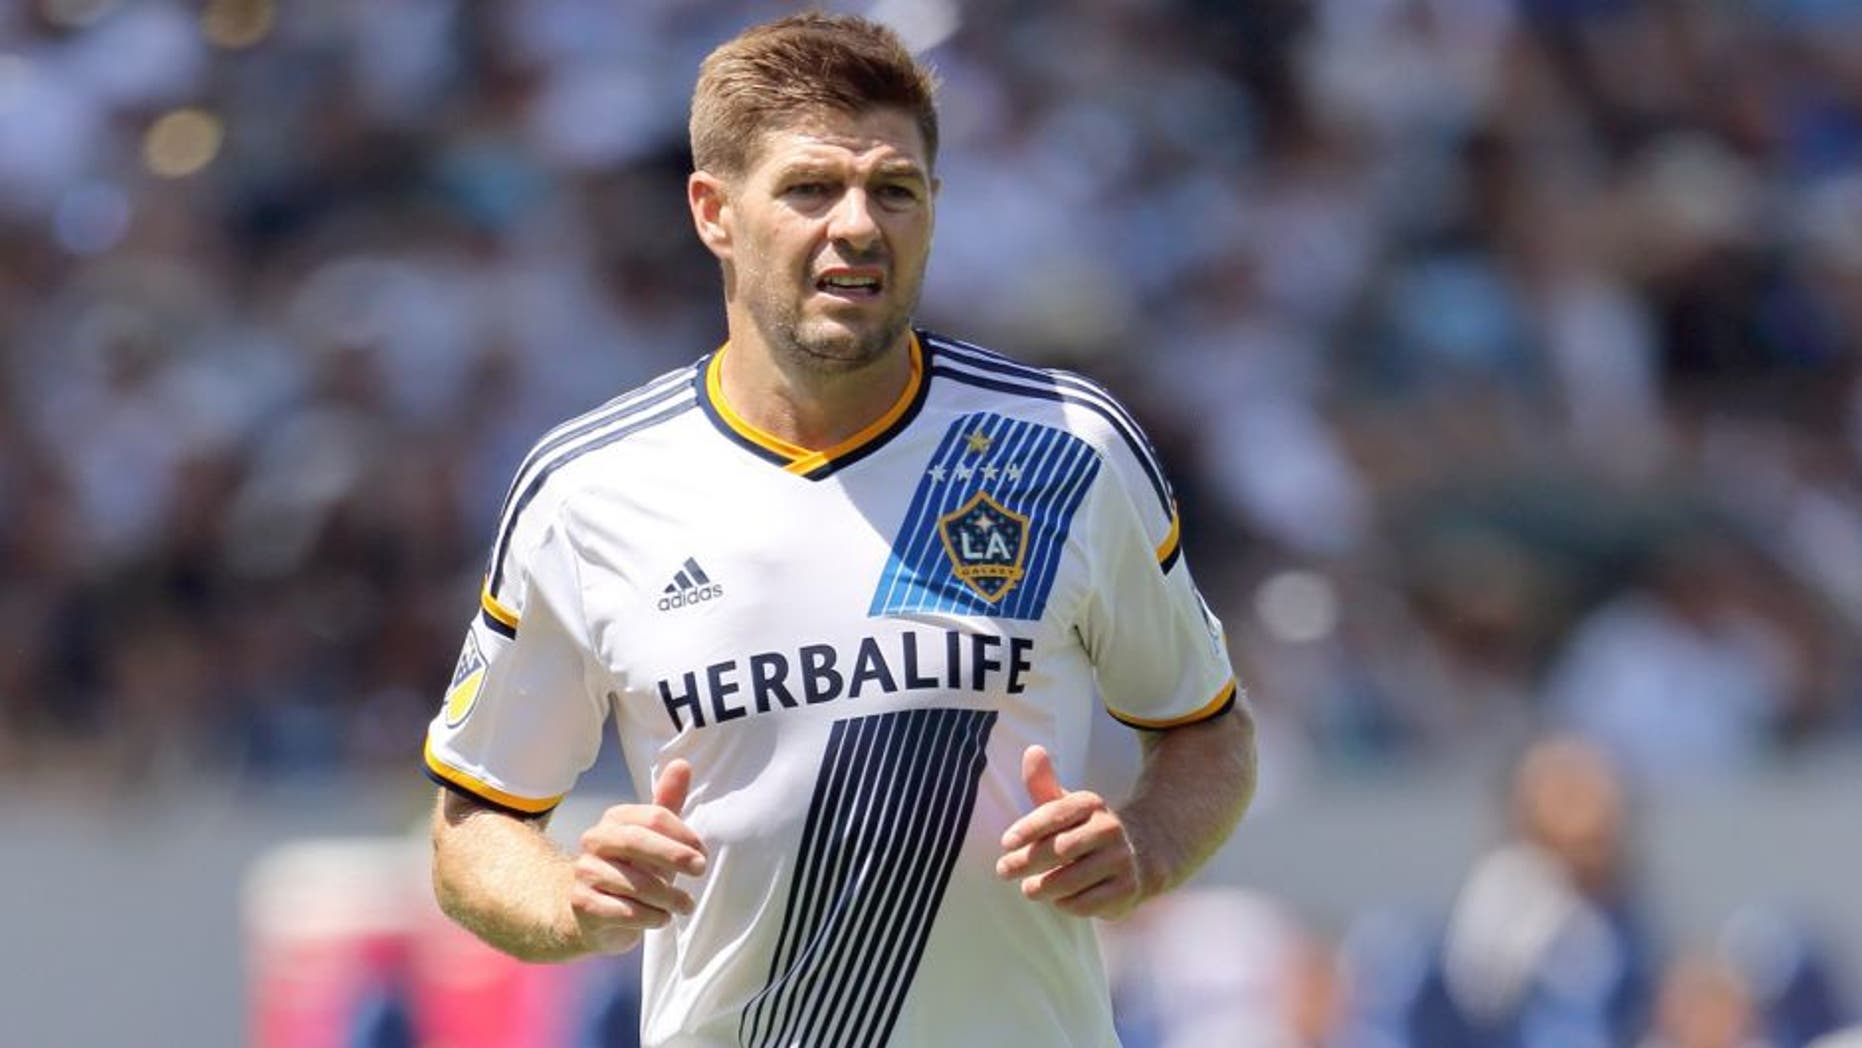 LOS ANGELES, CA - AUGUST 23: #8 Steven Gerrard of LA Galaxy during the MLS match between Los Angeles Galaxy and New York City FC at StubHub Center on August 23, 2015 in Los Angeles, California. (Photo by Matthew Ashton - AMA/Getty Images)